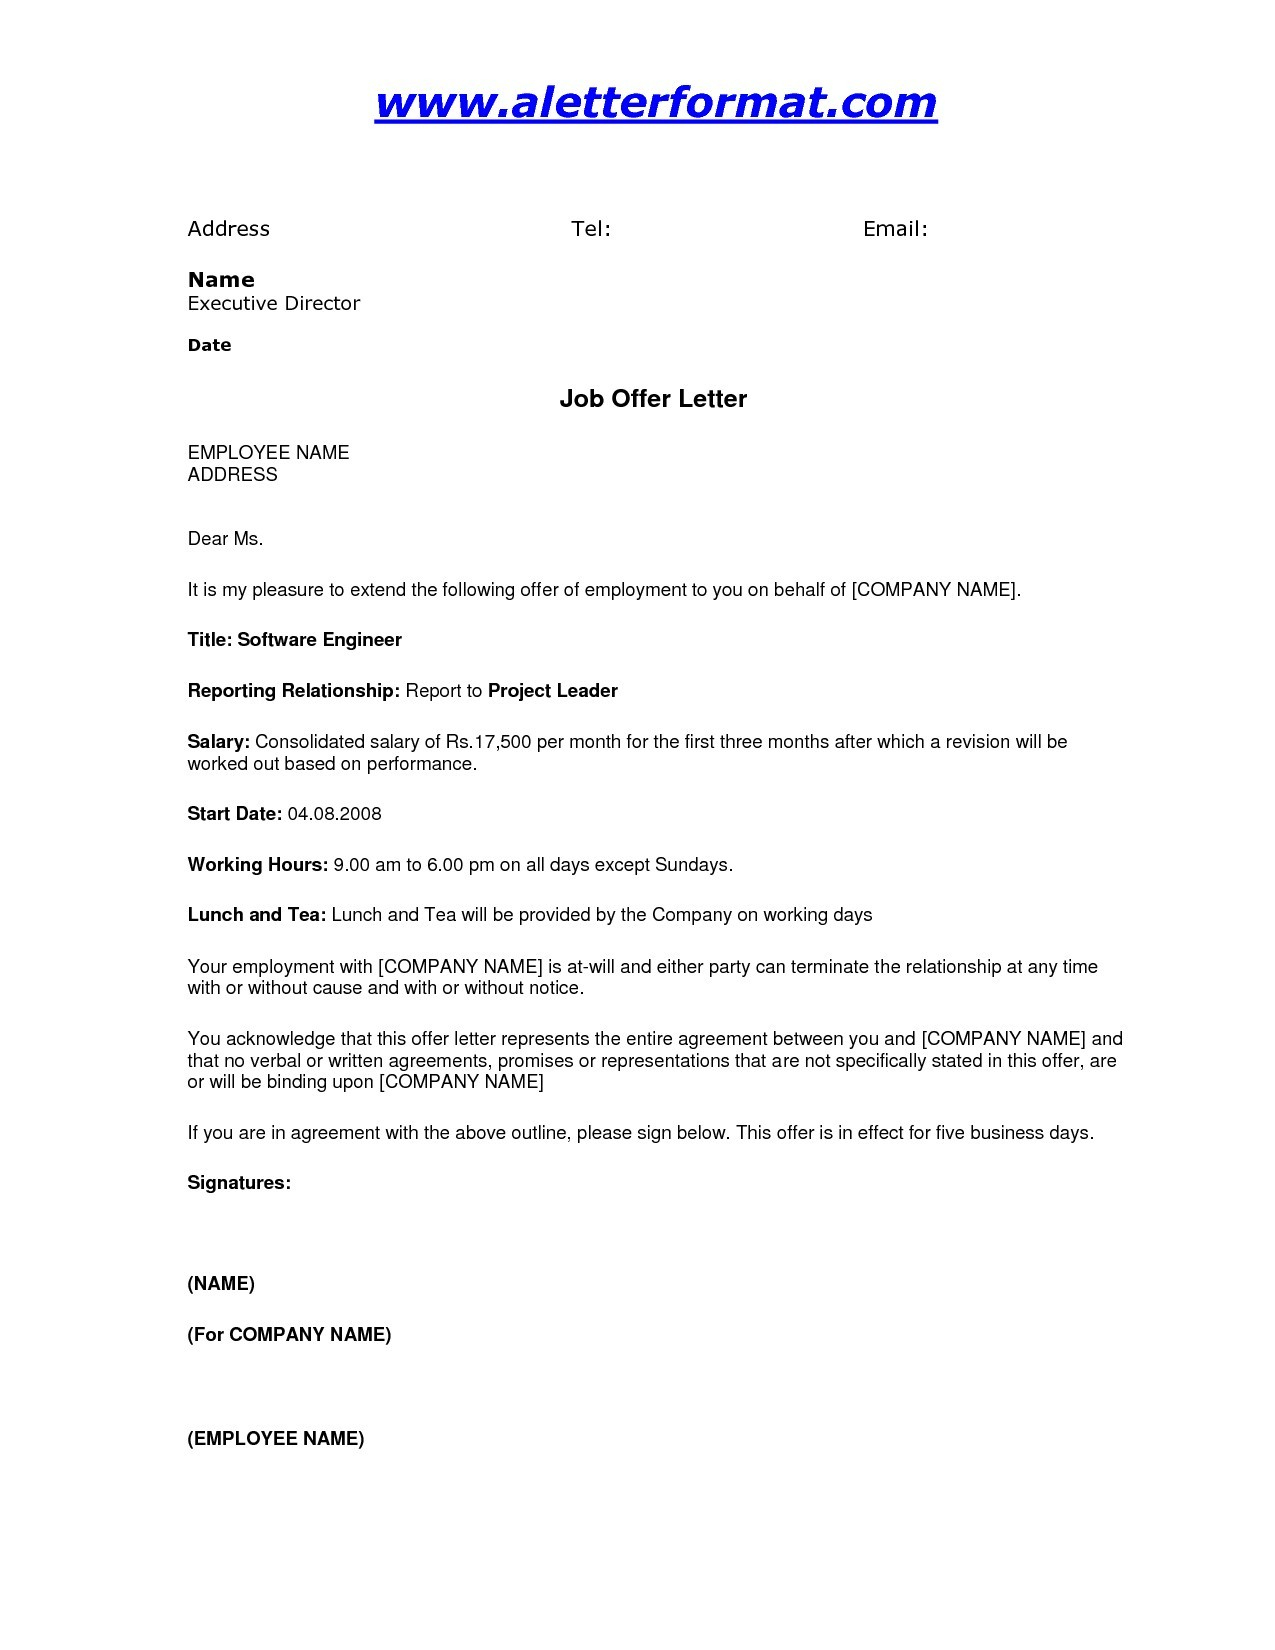 job offer letter template doc Collection-fer Letter format Doc It pany Best event Proposal Template Doc Domosens Inspirationa Pany Job 16-m